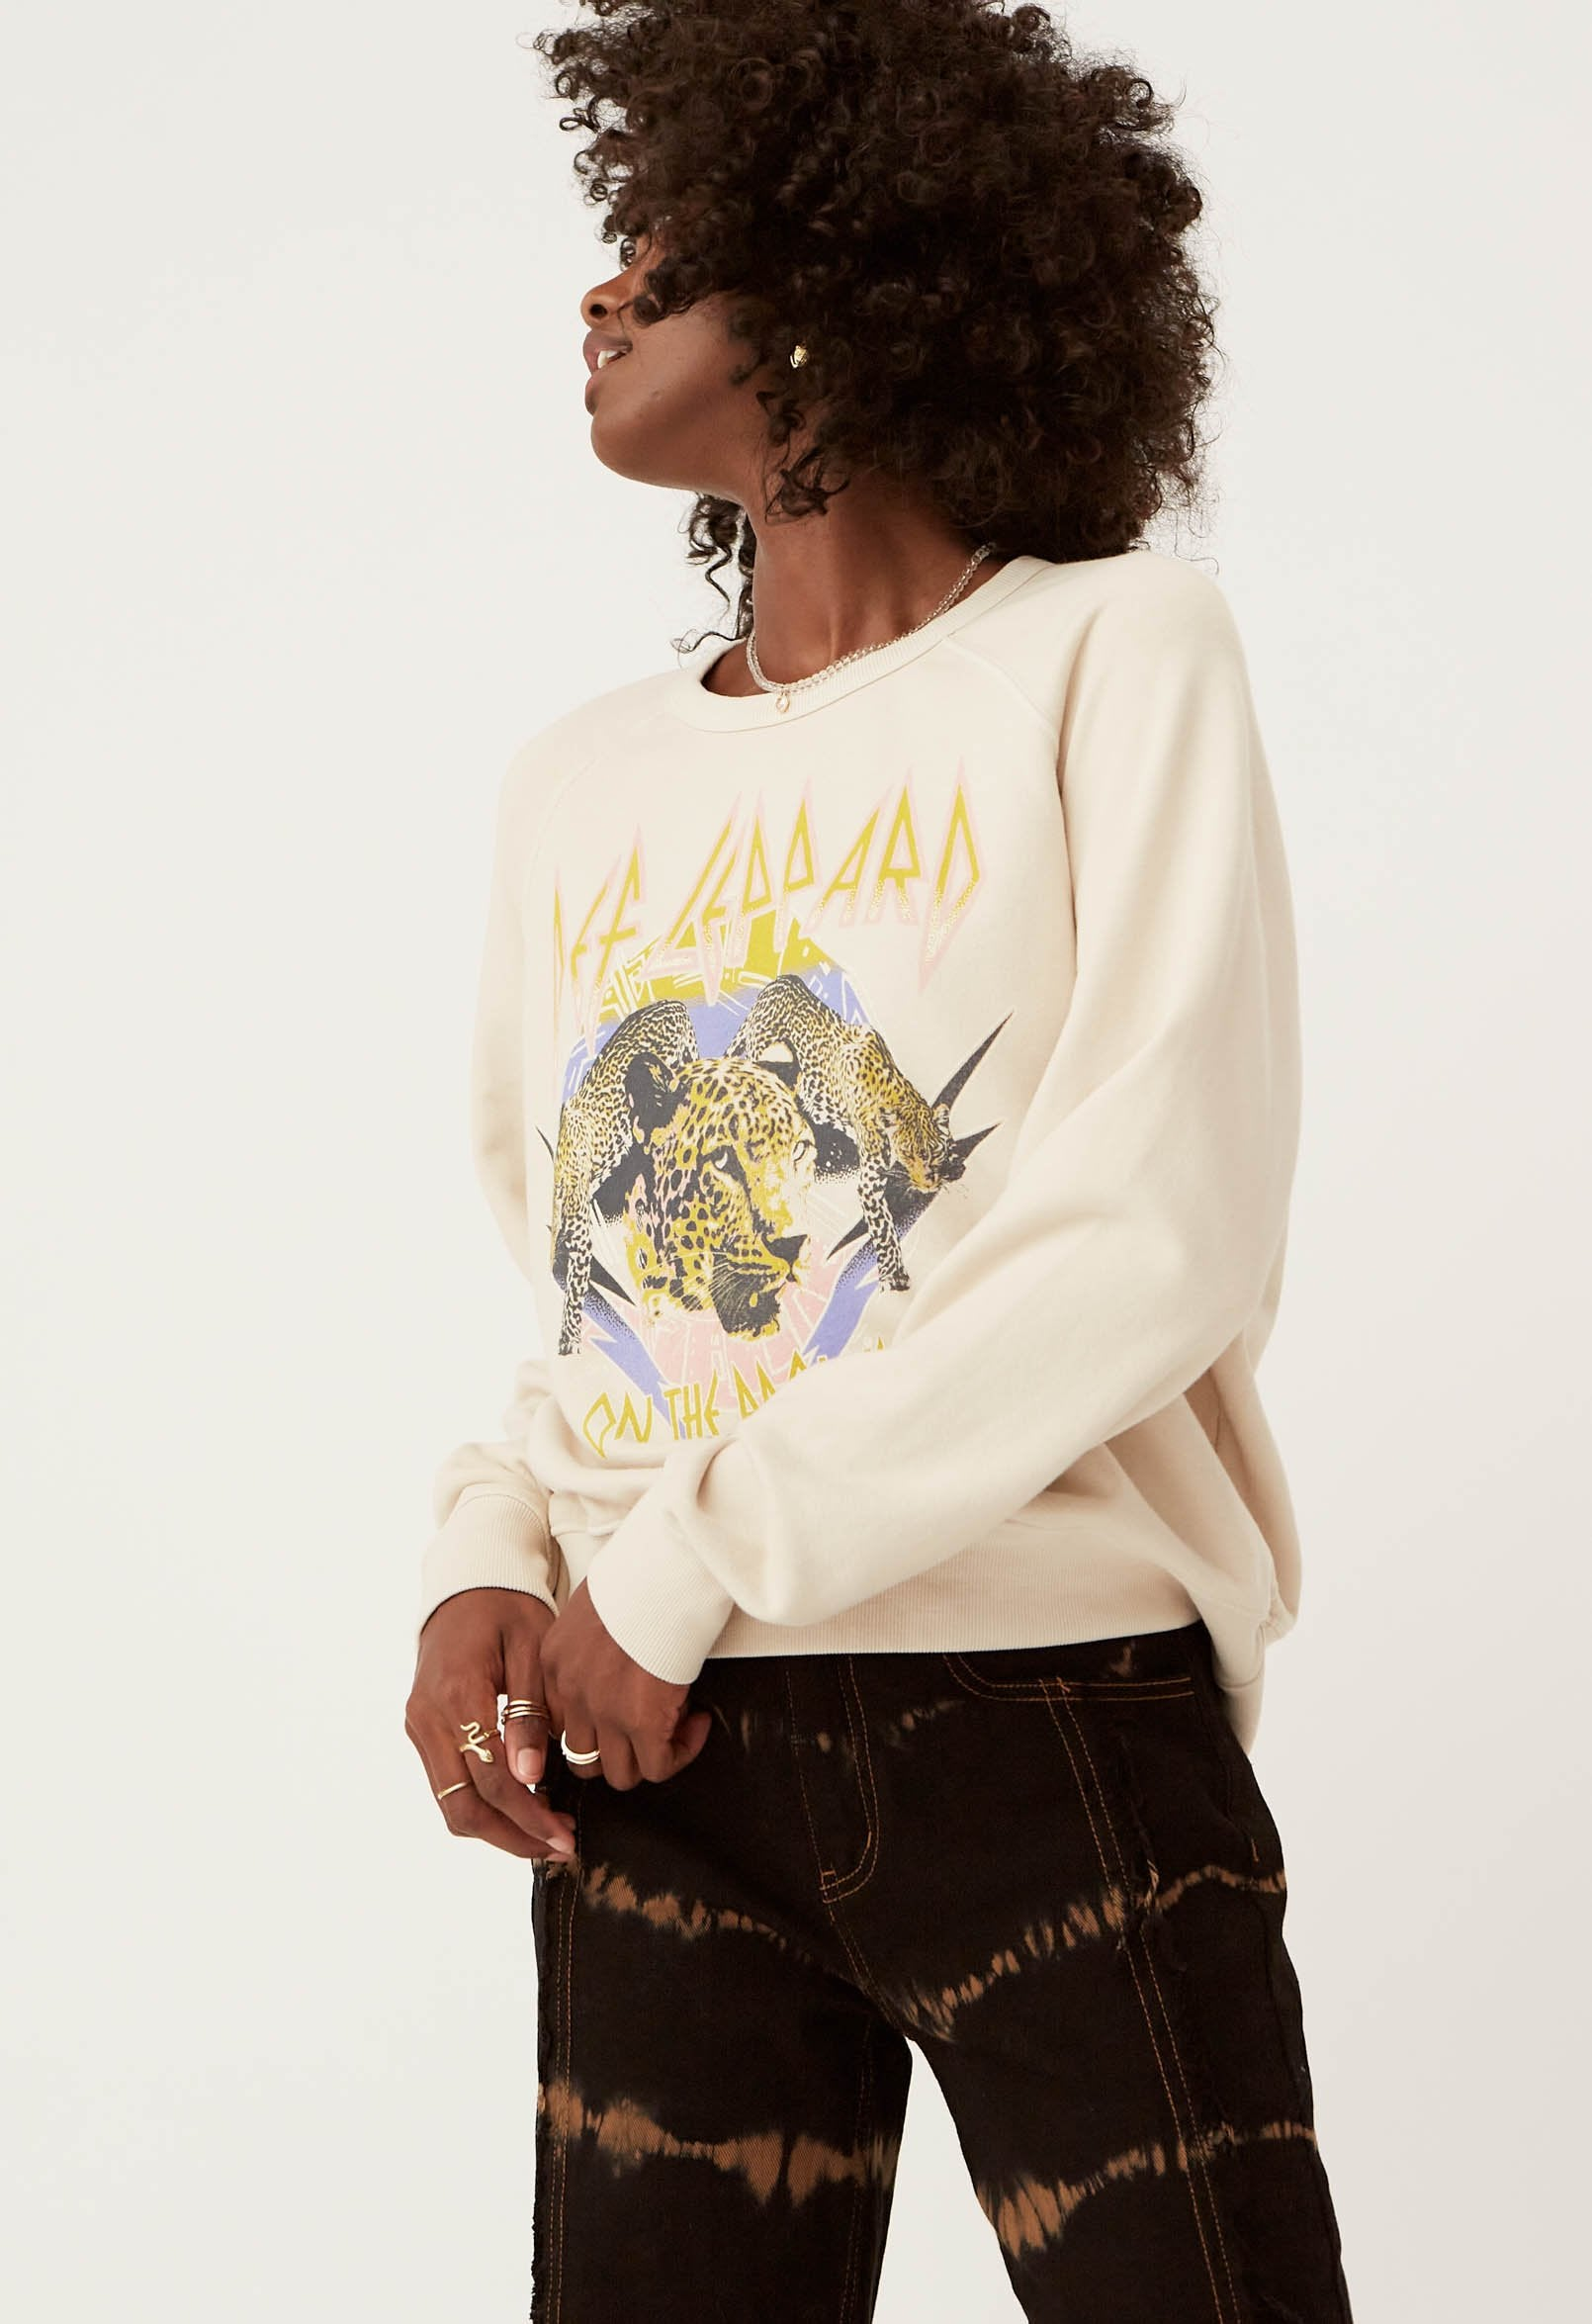 DAYDREAMER DEF LEPPARD ON THE PROWL VARSITY CREW SWEATSHIRT S377DEF706